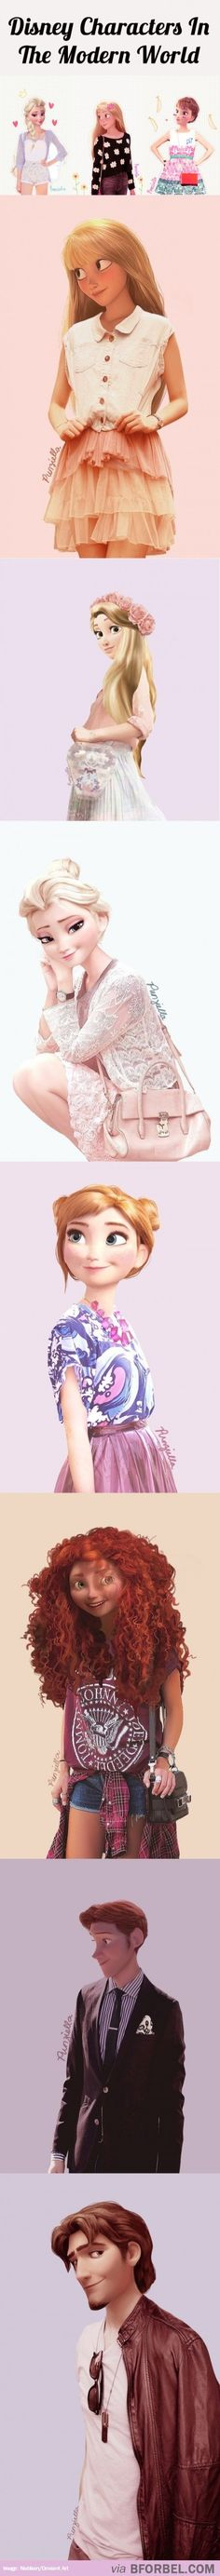 7 Disney Characters Dressed For The Modern World…